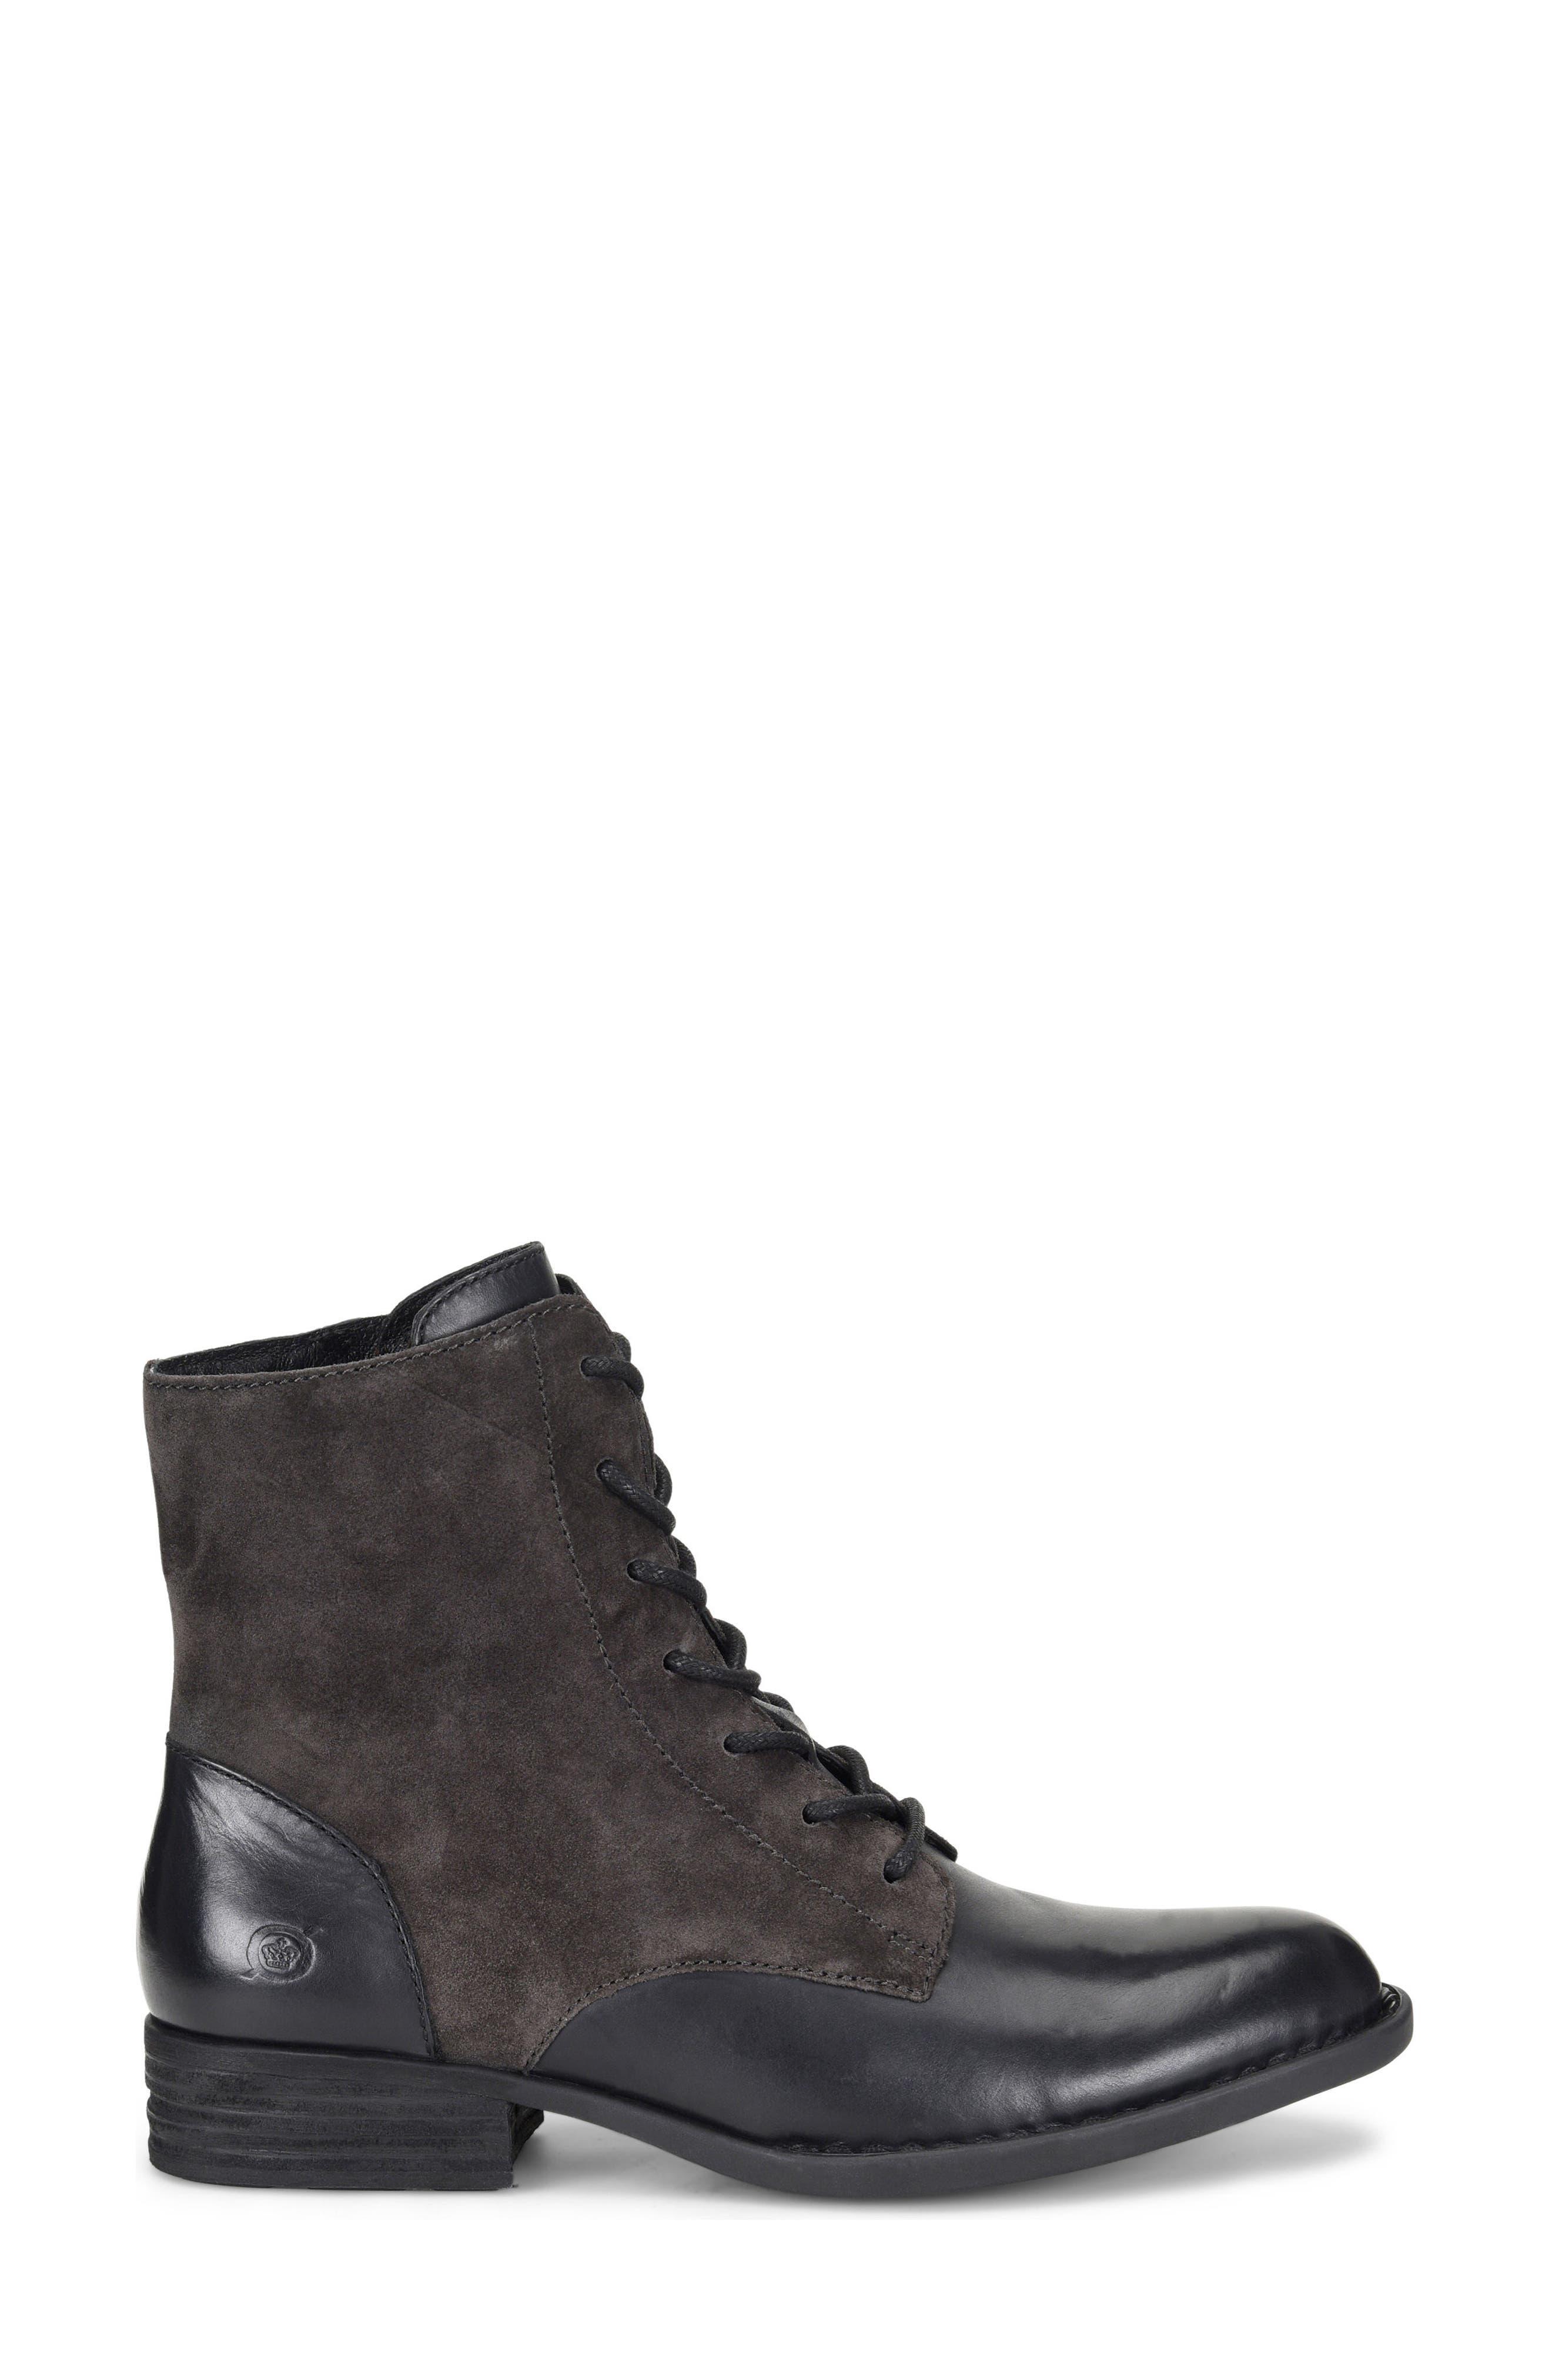 Clements Lace-Up Boot,                             Alternate thumbnail 9, color,